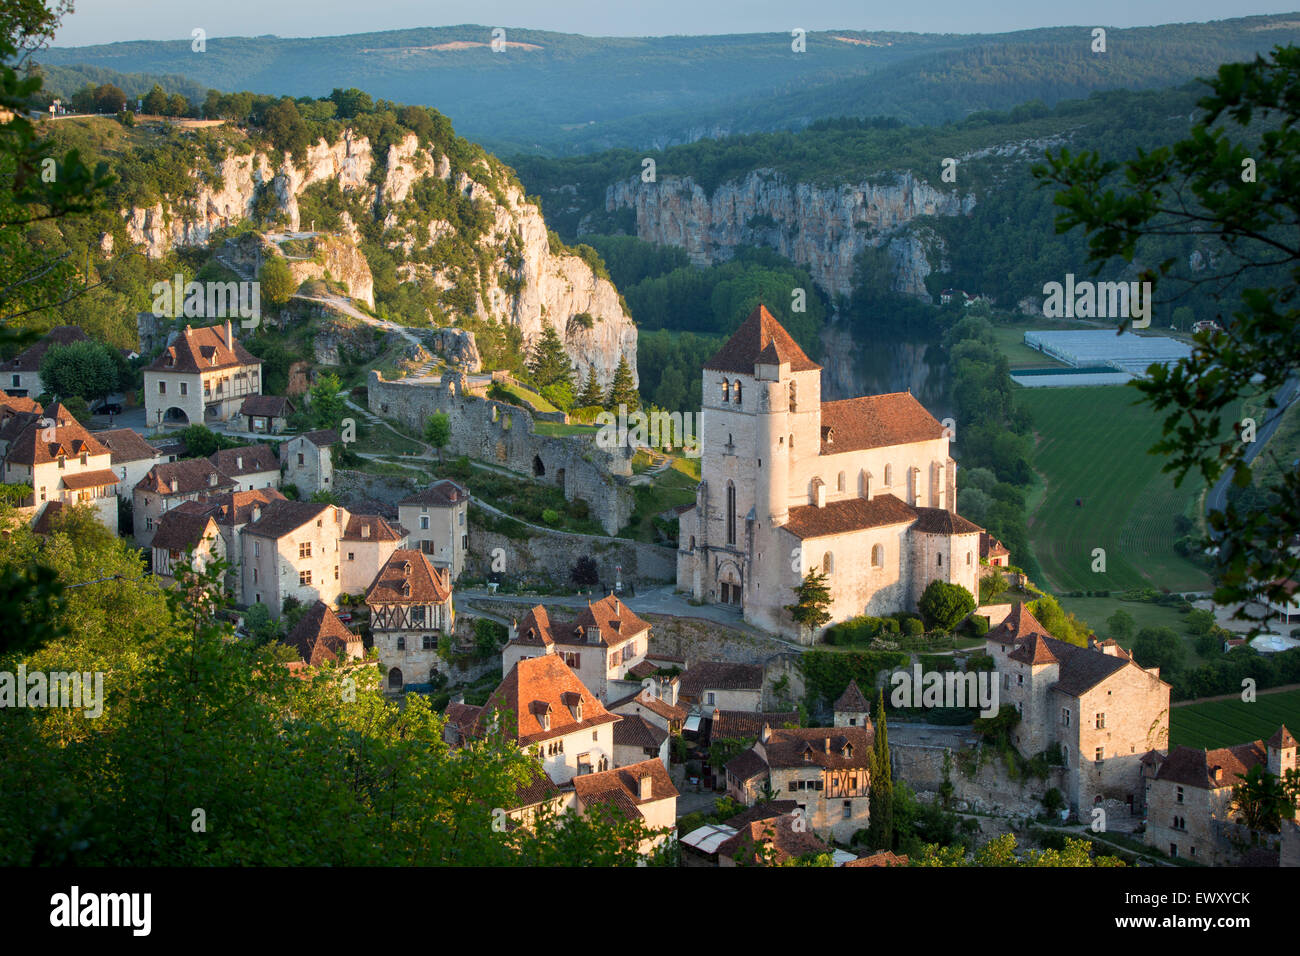 Early morning over Saint-Cirq-Lapopie, Lot Valley, Midi-Pyrenees, France - Stock Image